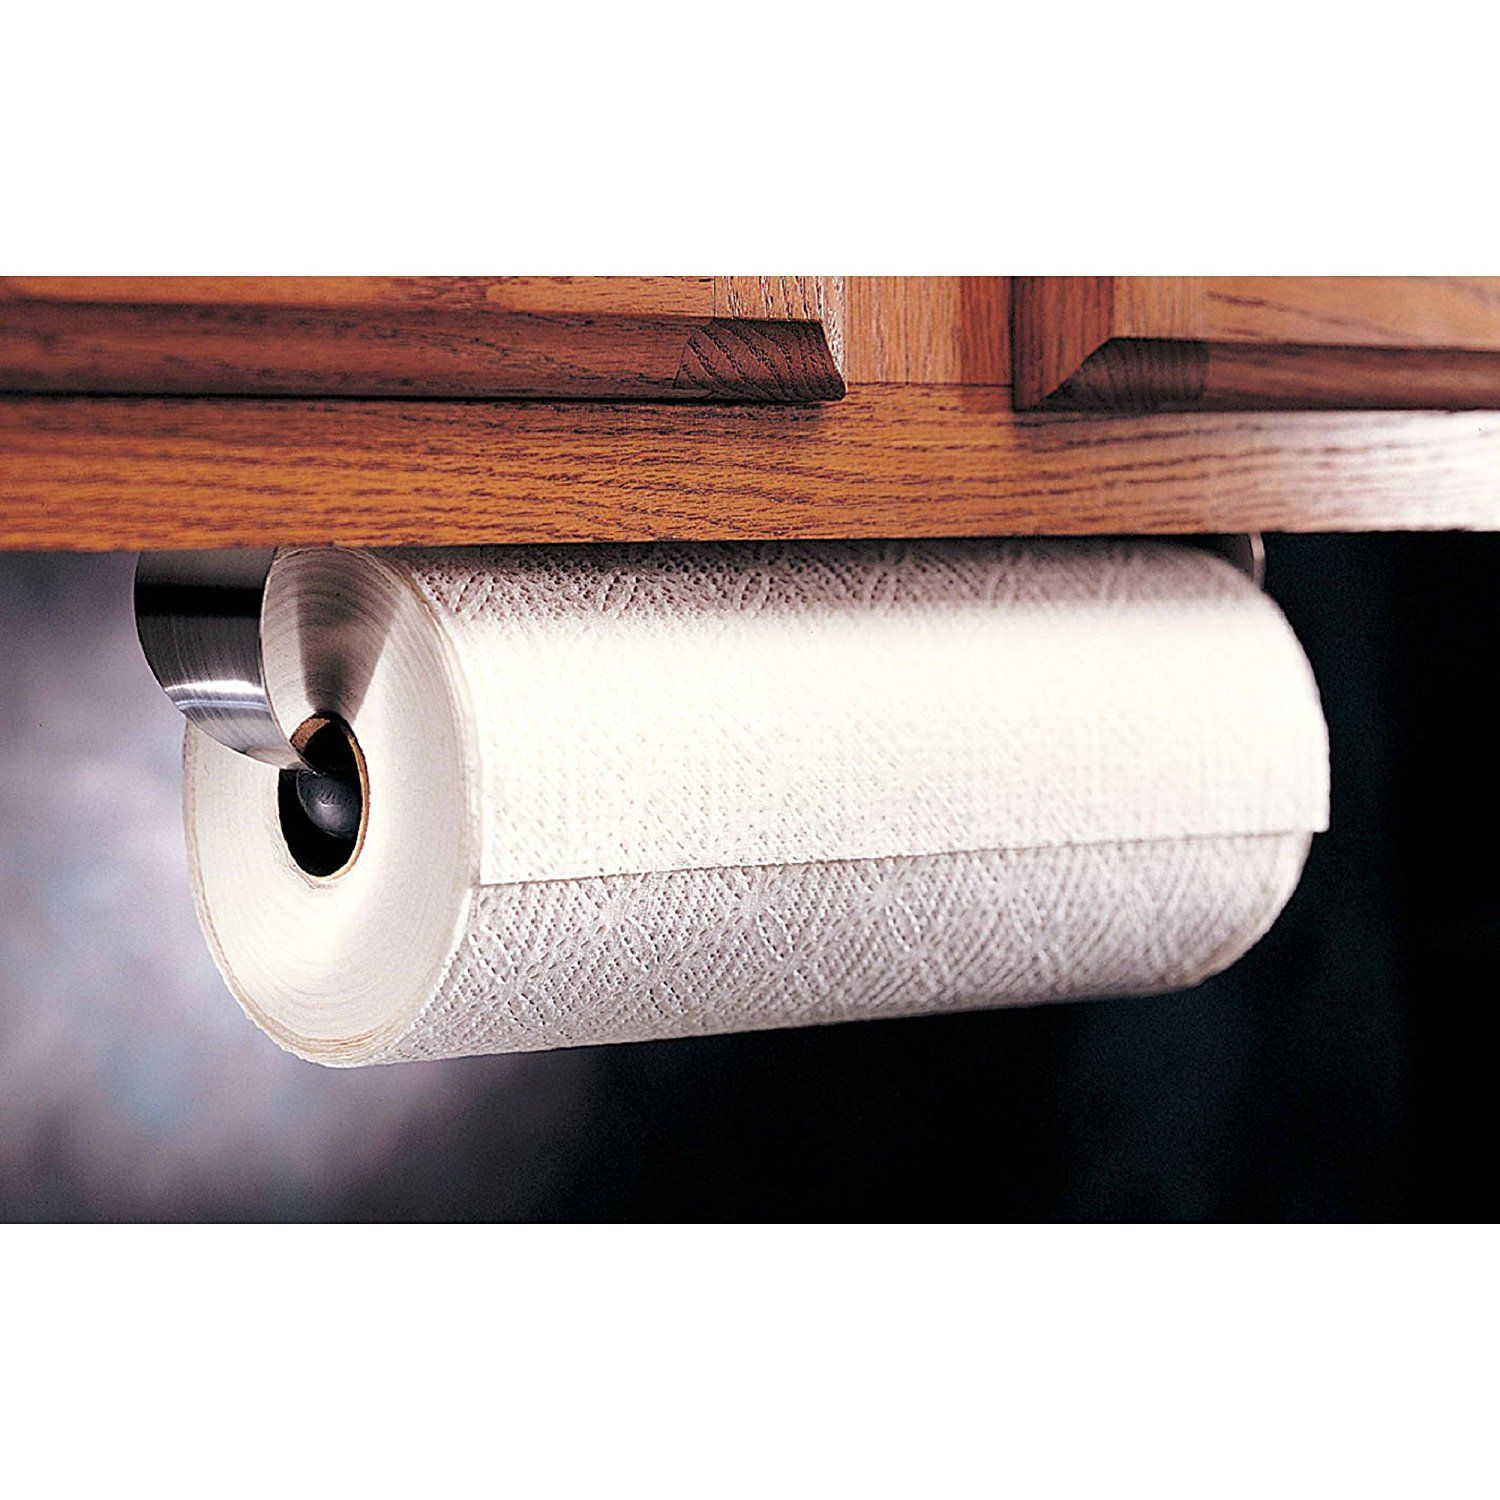 Under The Cabinet Paper Towel Holder Amusing Amazon Prodyne M913 Stainless Steel Under Cabinet Paper Towel Decorating Design